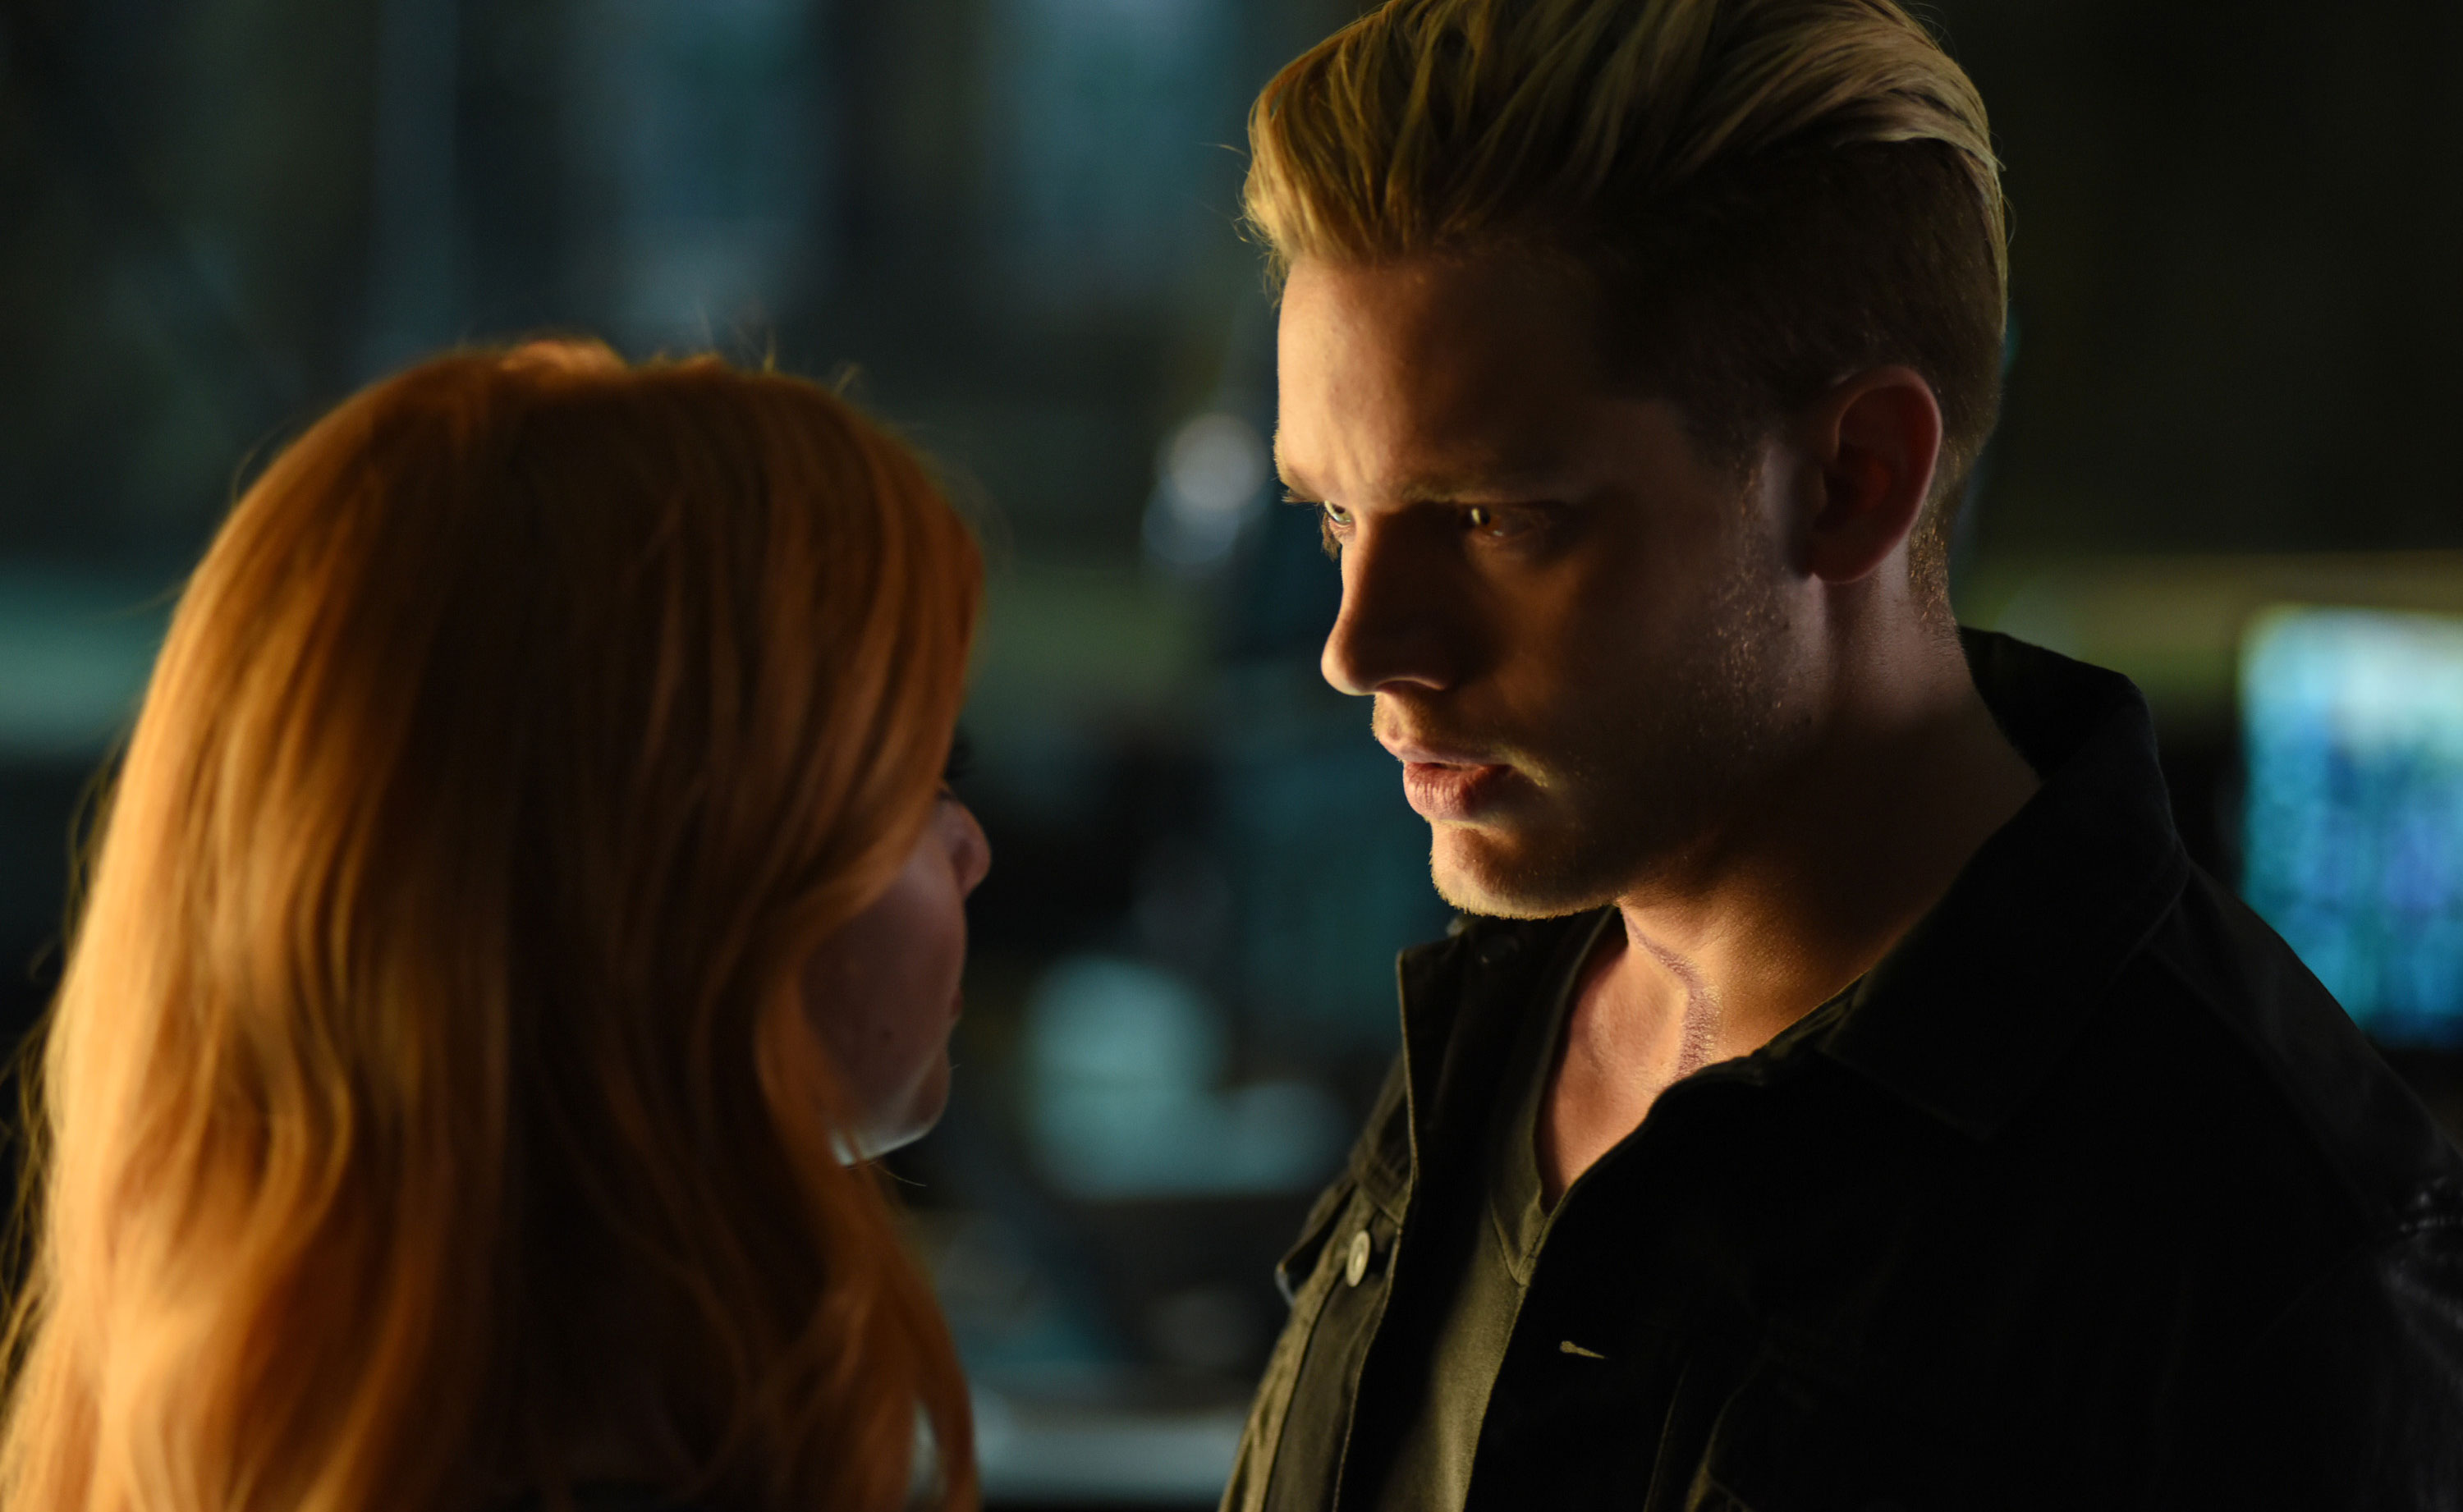 Jace Won't Let Anything Happen to Clary on Tonight's